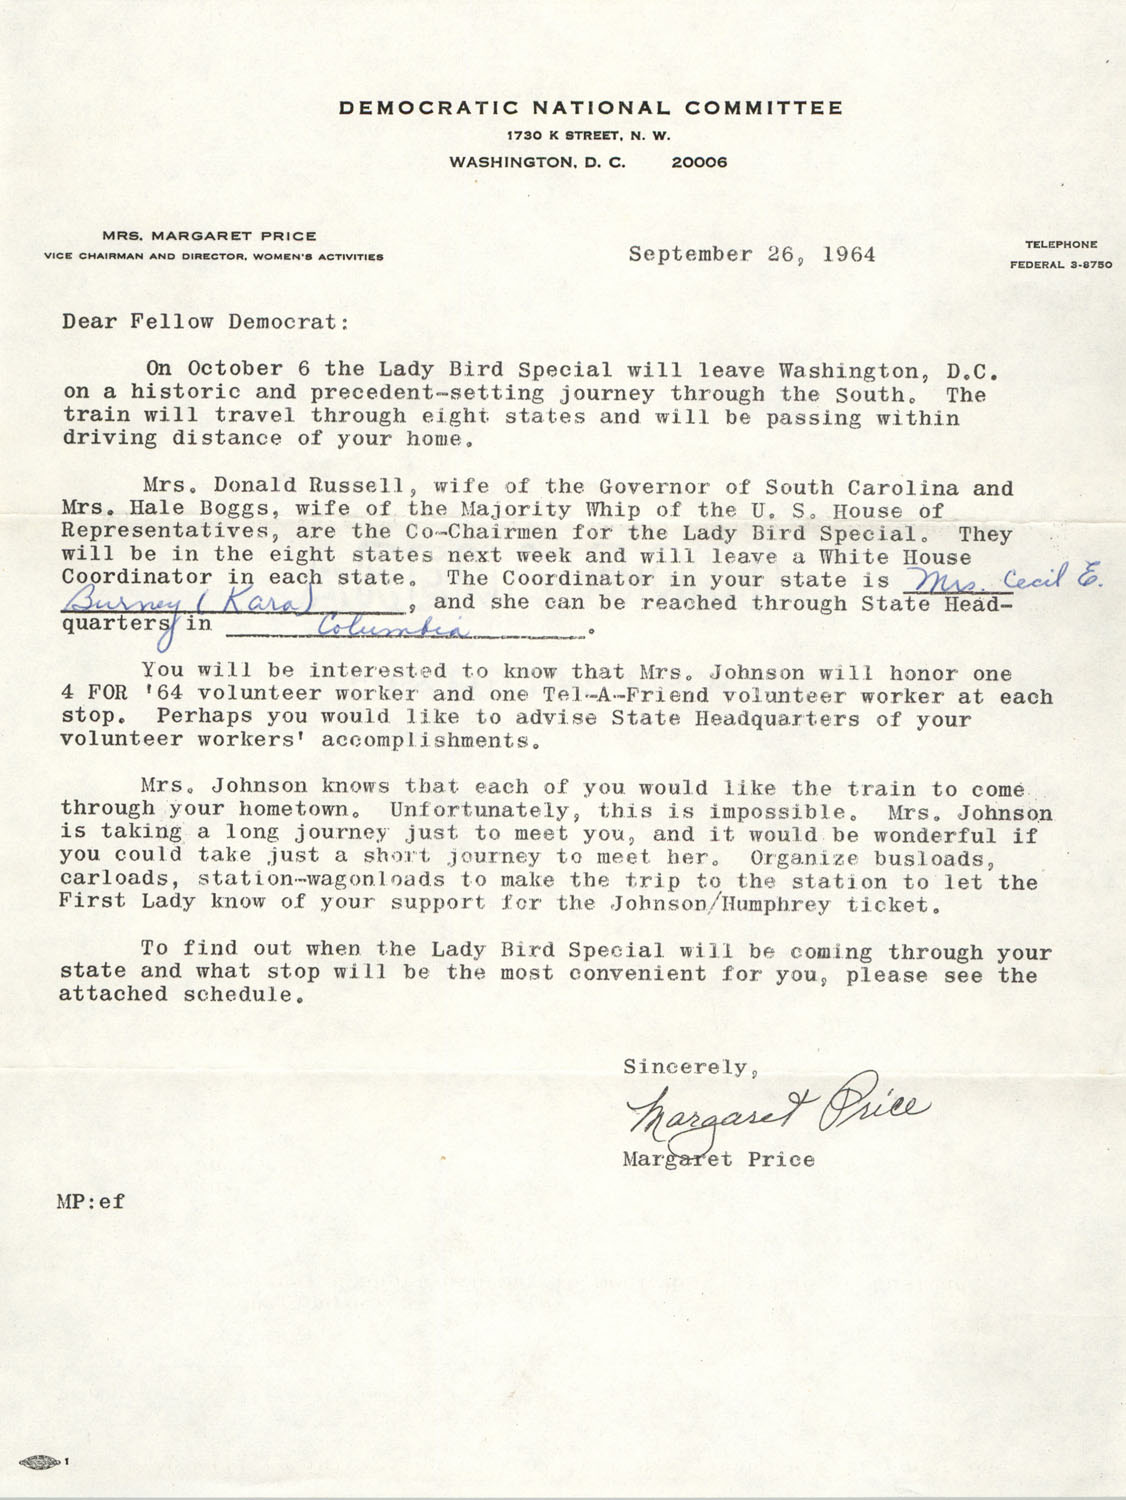 Letter from Margaret Price to Democratic Women of Charleston County, September 26, 1964